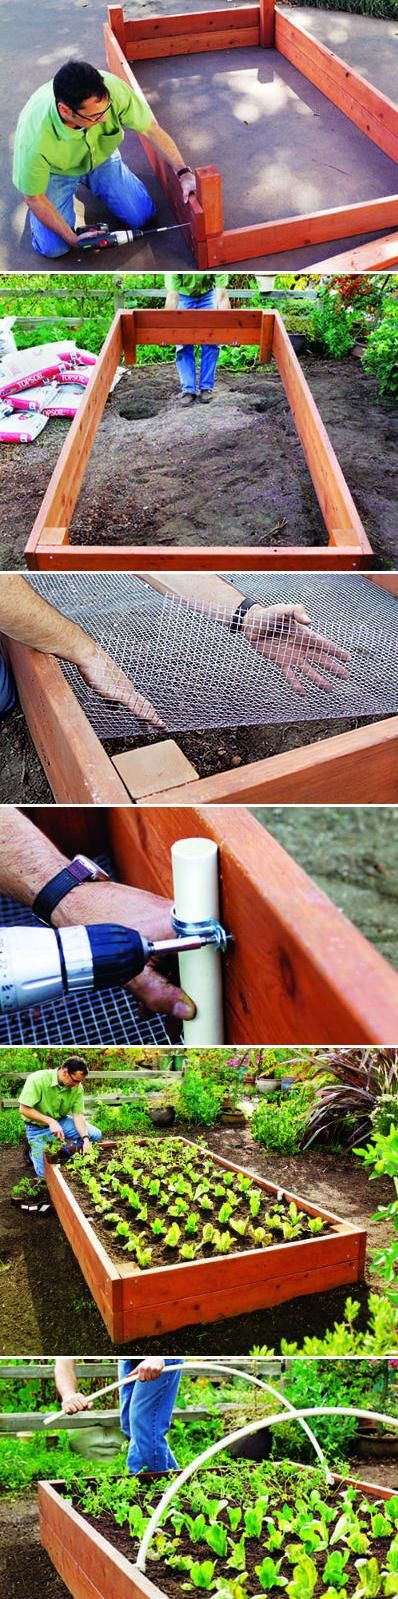 Raised Garden Bed: Easy DIY Steps to Build an Elev...